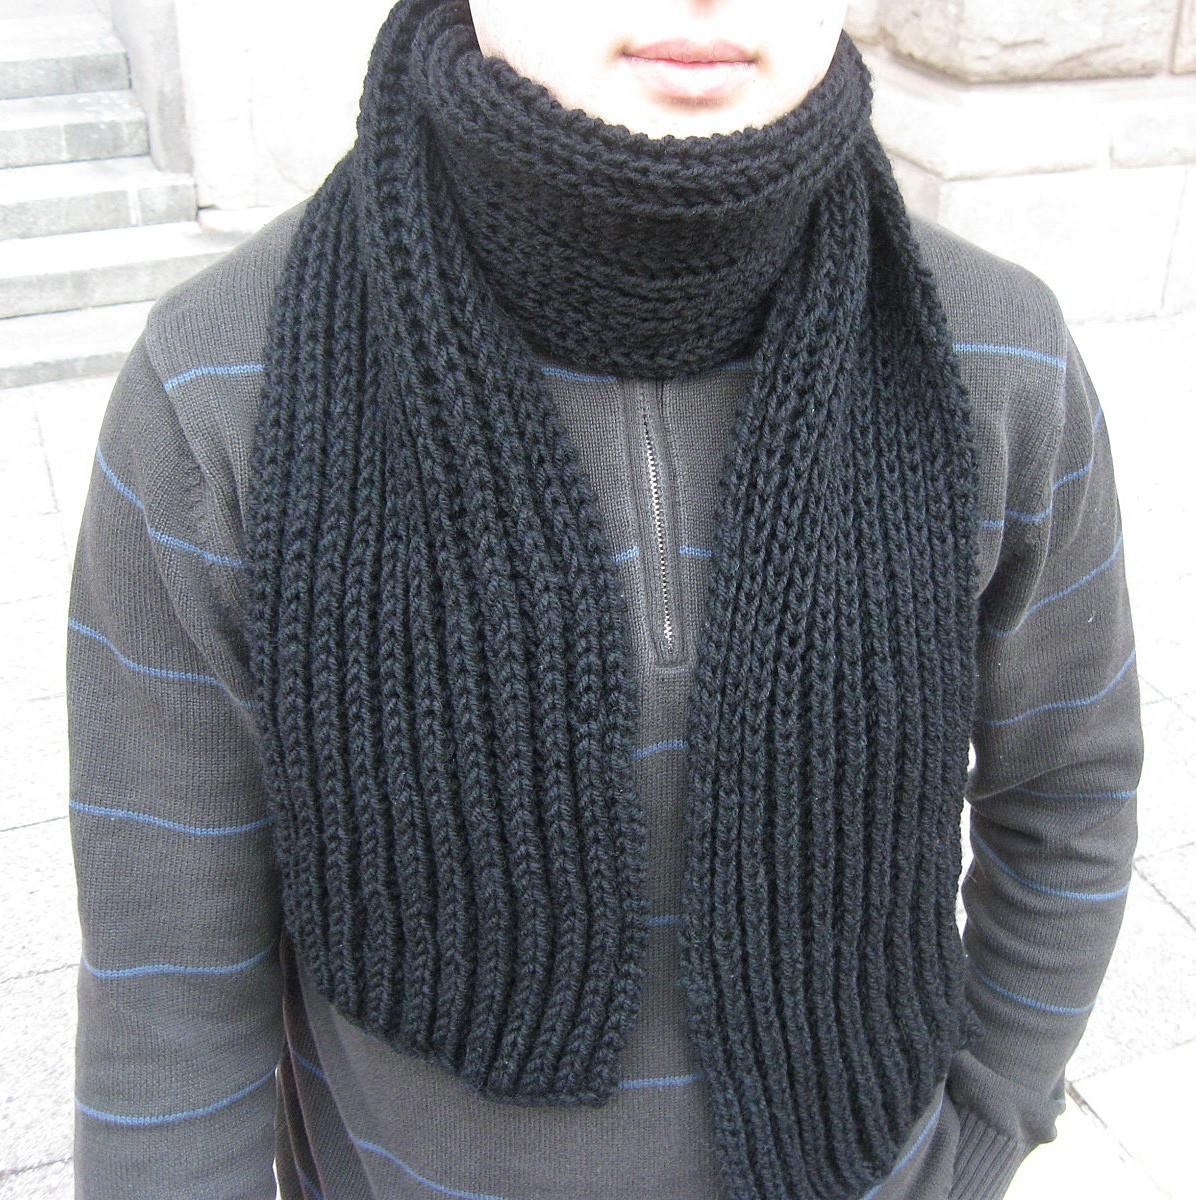 Best Of Types Scarves for Men Best Scarves for Men Menscosmo Women's Knitted Vest Patterns Of Amazing 48 Ideas Women's Knitted Vest Patterns